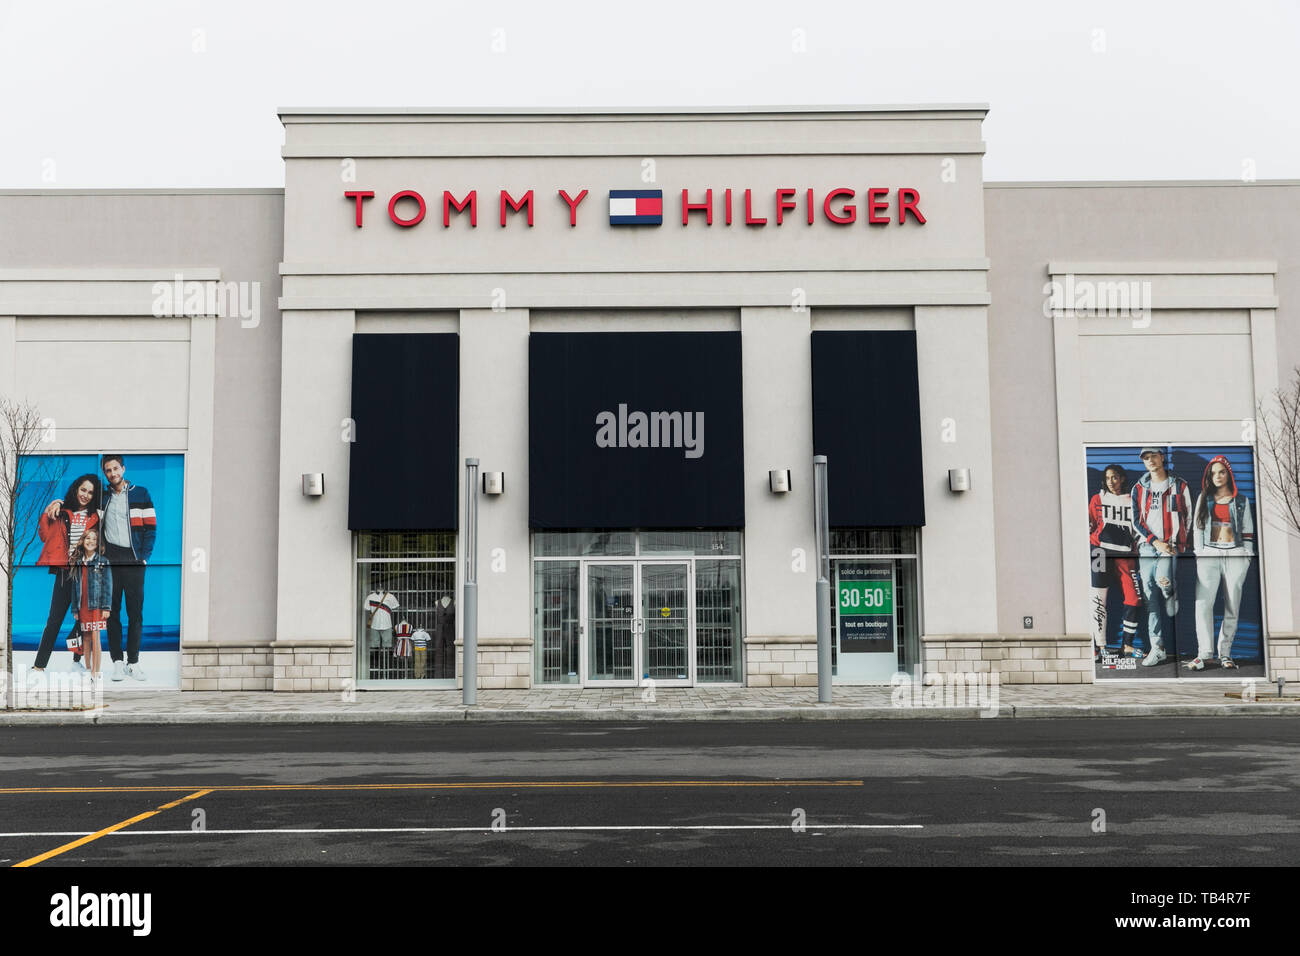 8223e61c A logo sign outside of a Tommy Hilfiger retail store location in  Vaudreuil-Dorion,